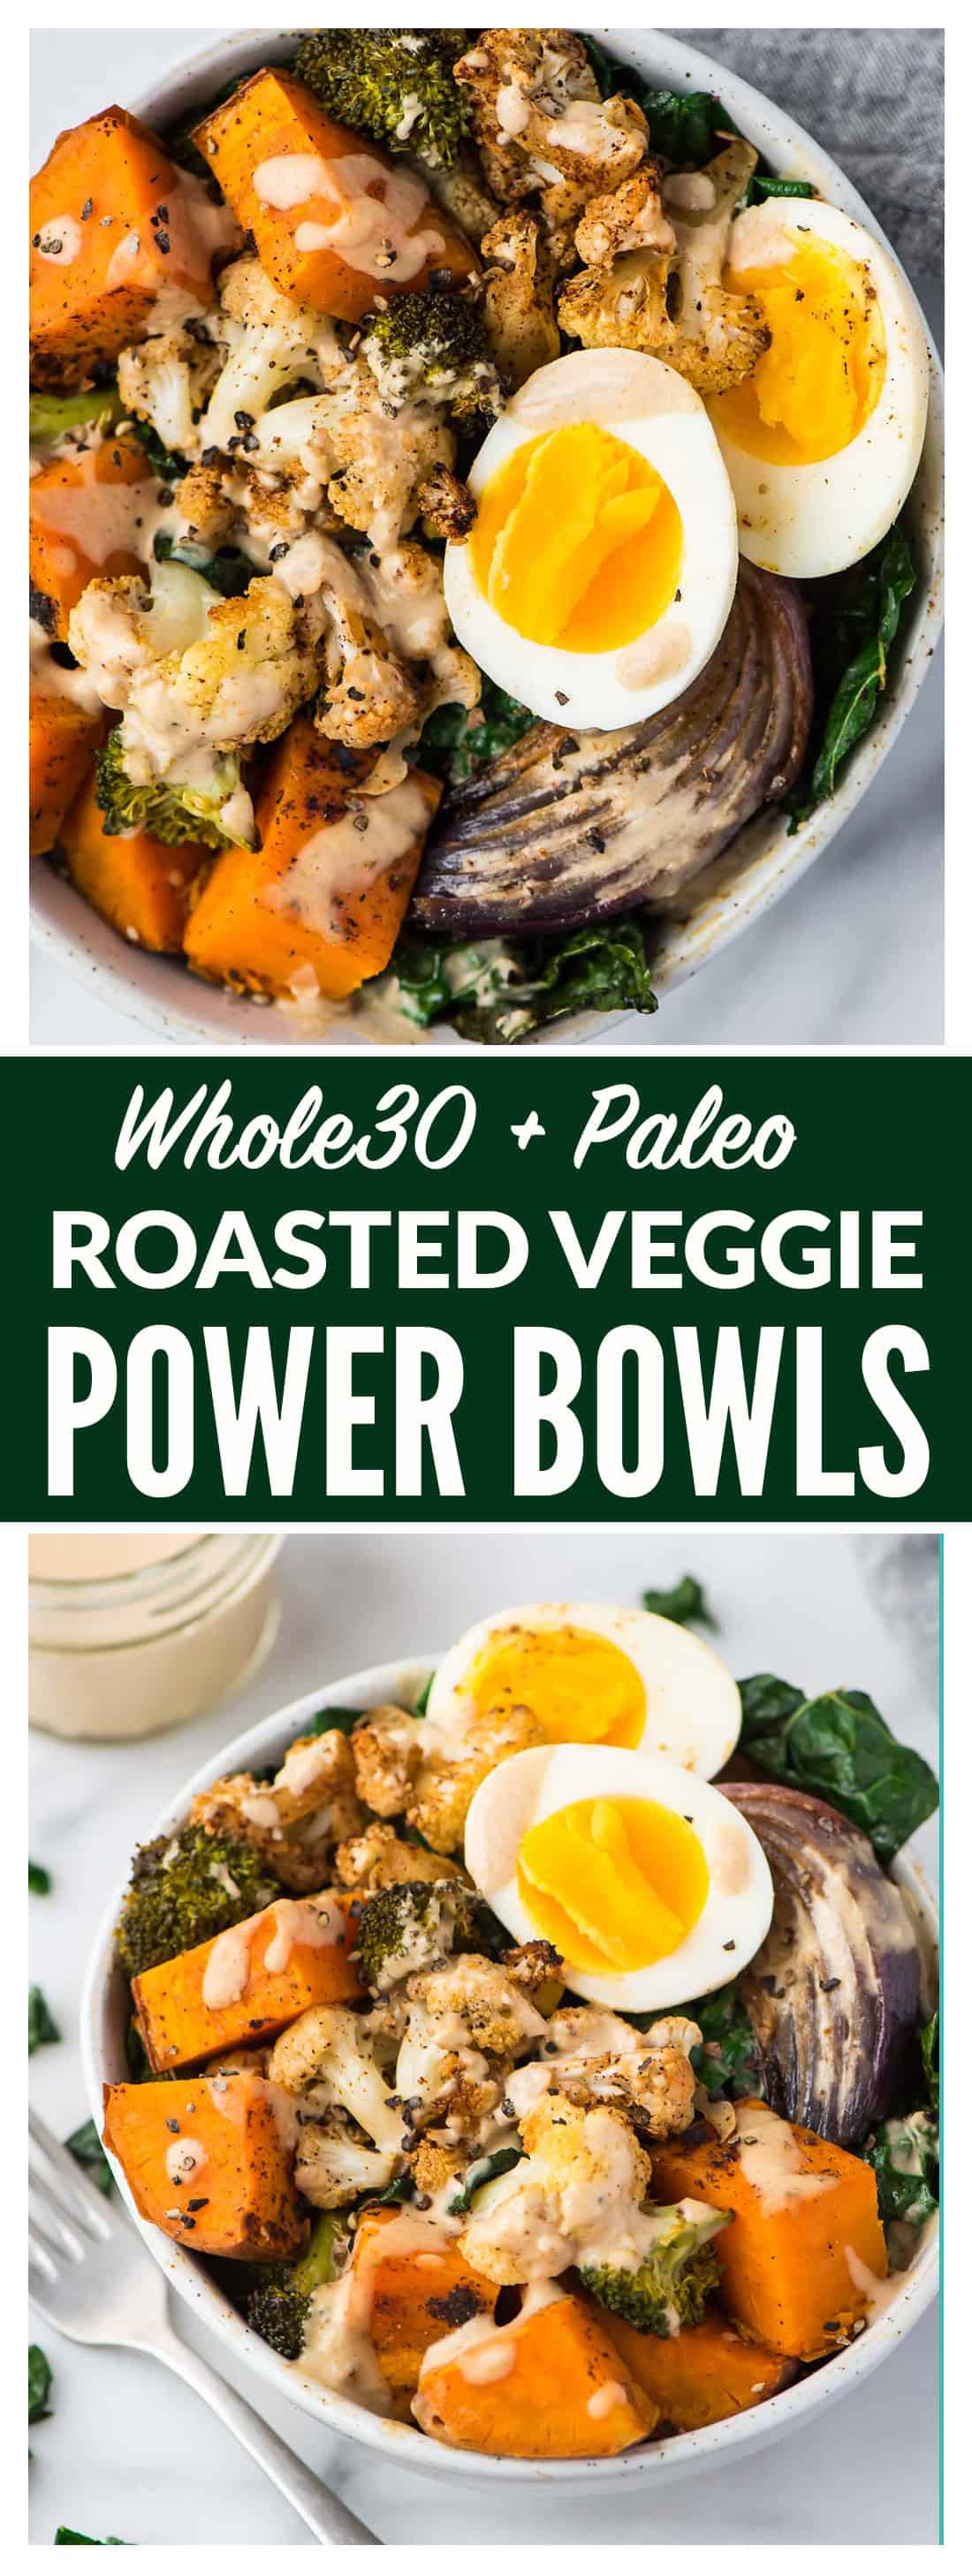 Whole30 vegetarian power bowls easy whole30 recipe easy and healthy whole30 vegetarian power bowl low carb packed with roasted veggies forumfinder Images